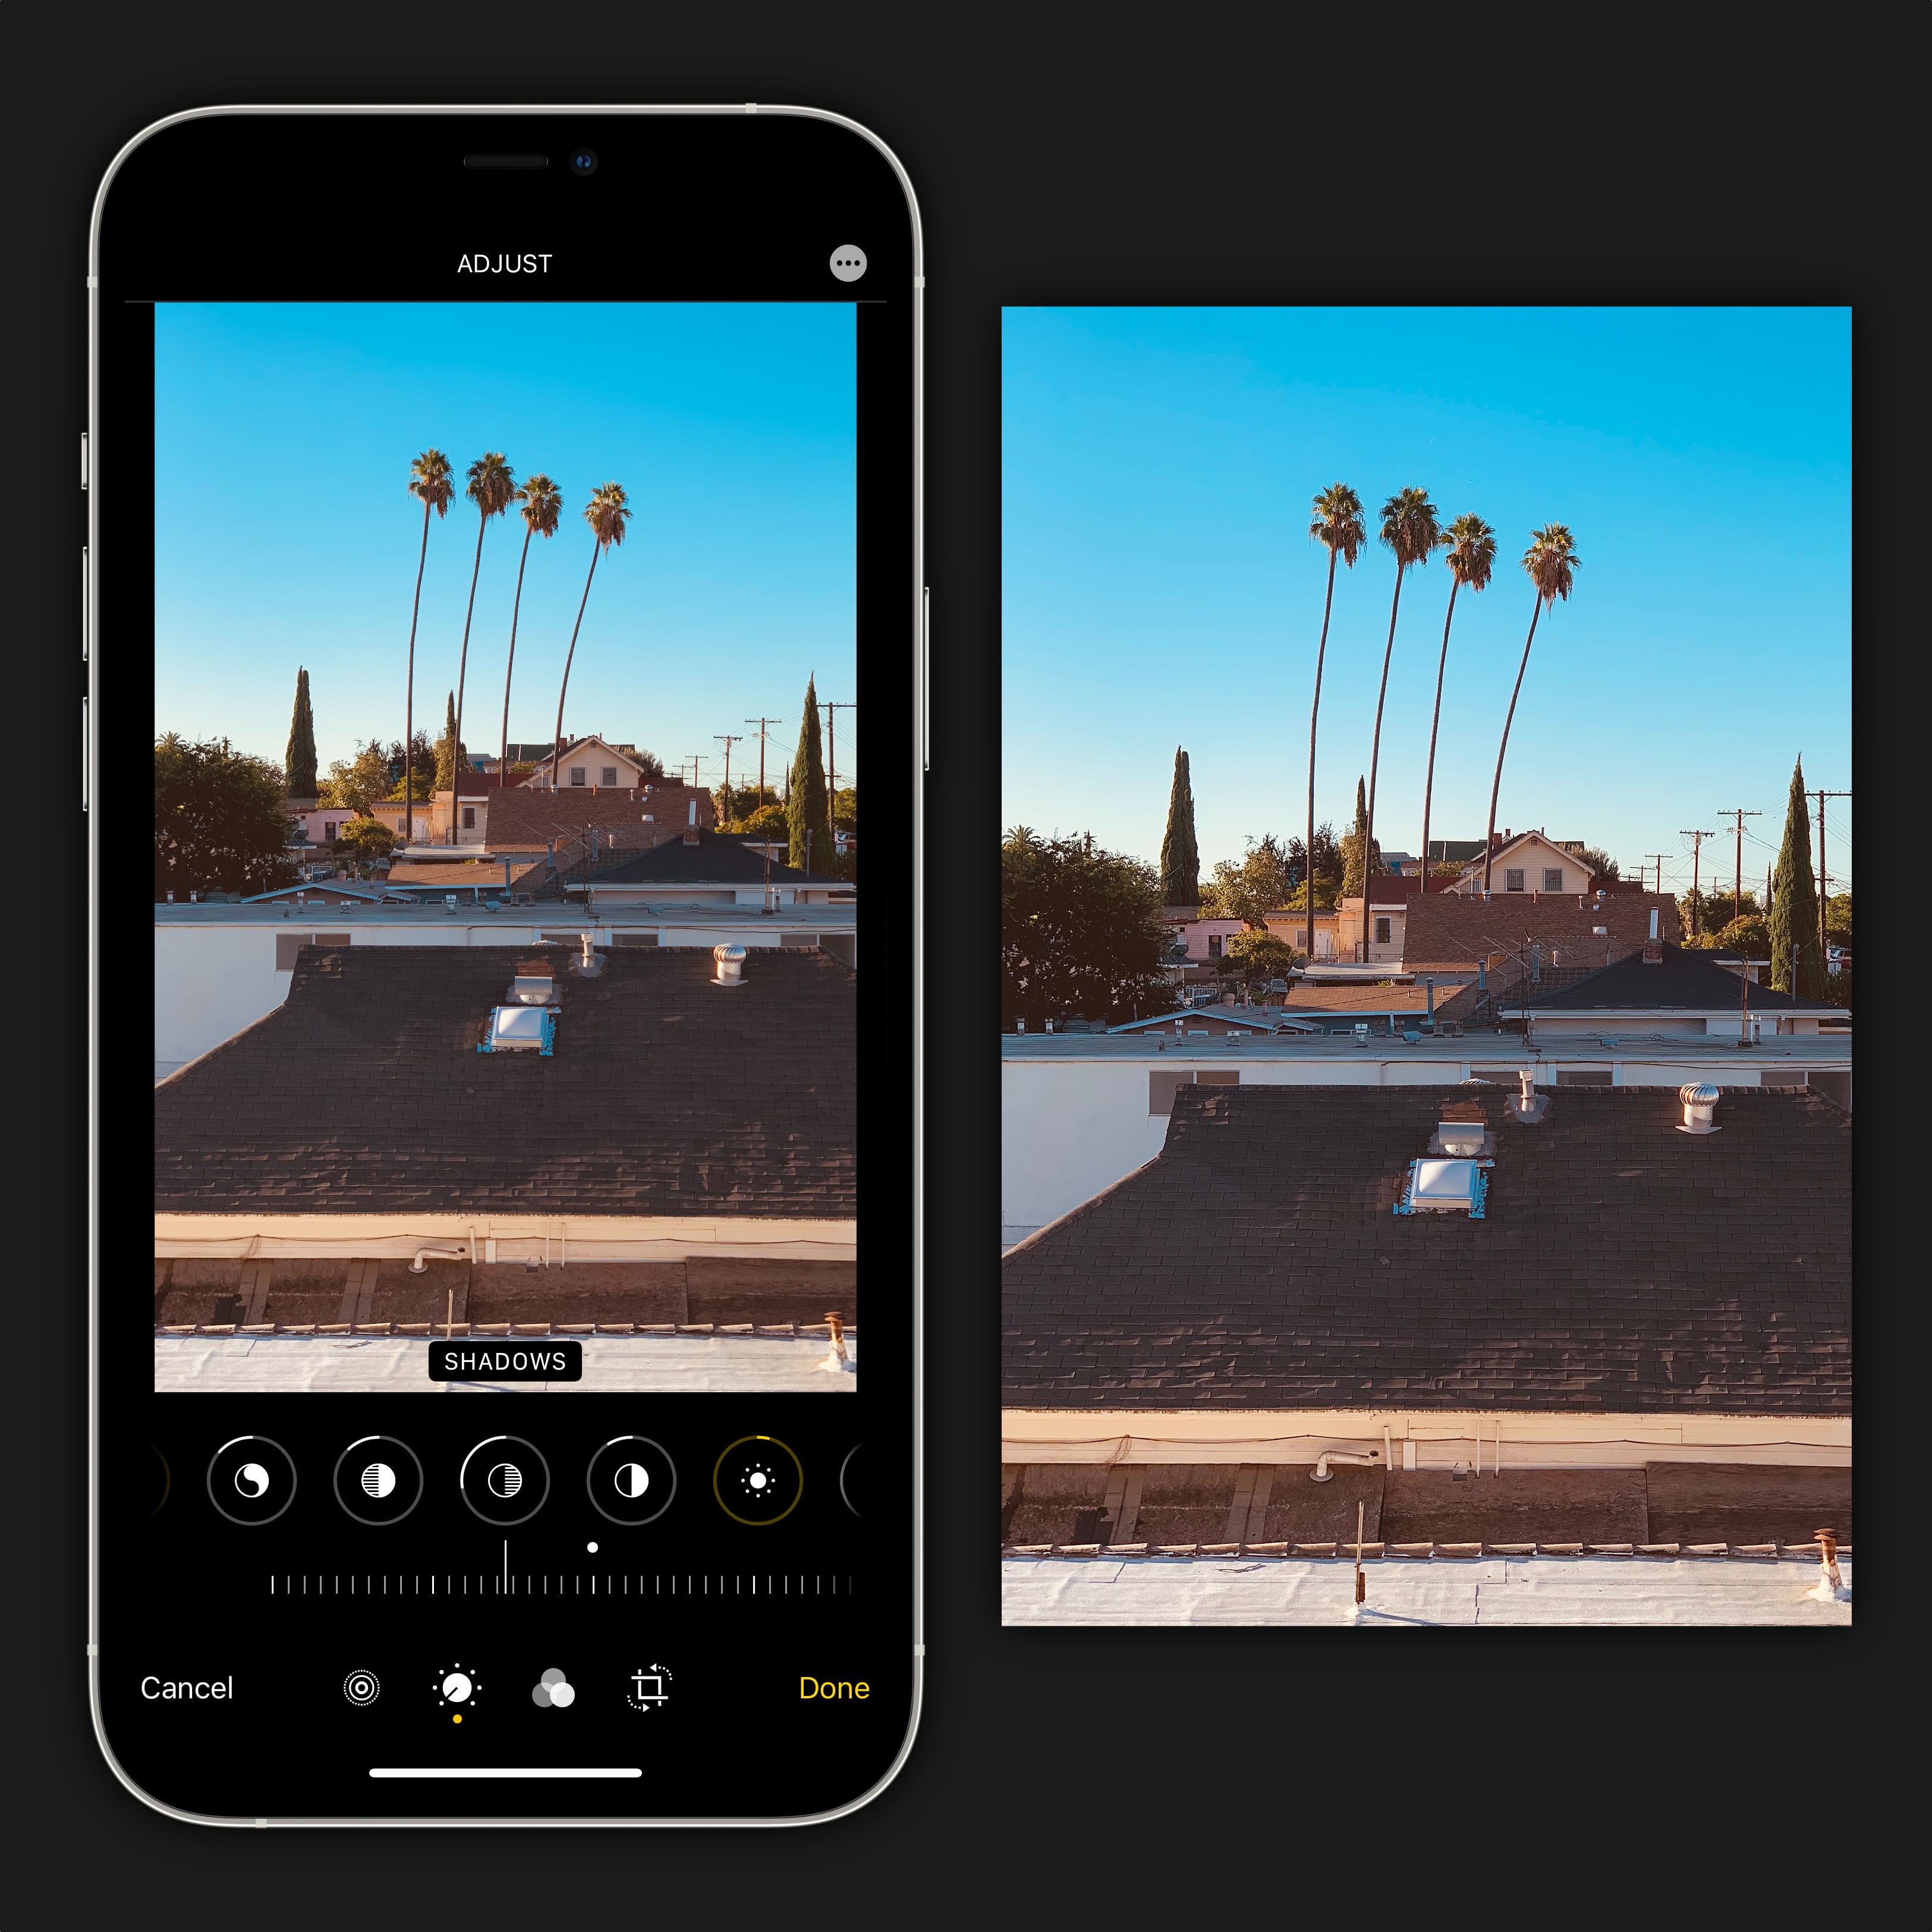 Edit your photo in the Photos app to adjust perspective and cropping. Dial in the right mood using the built-in color tools.